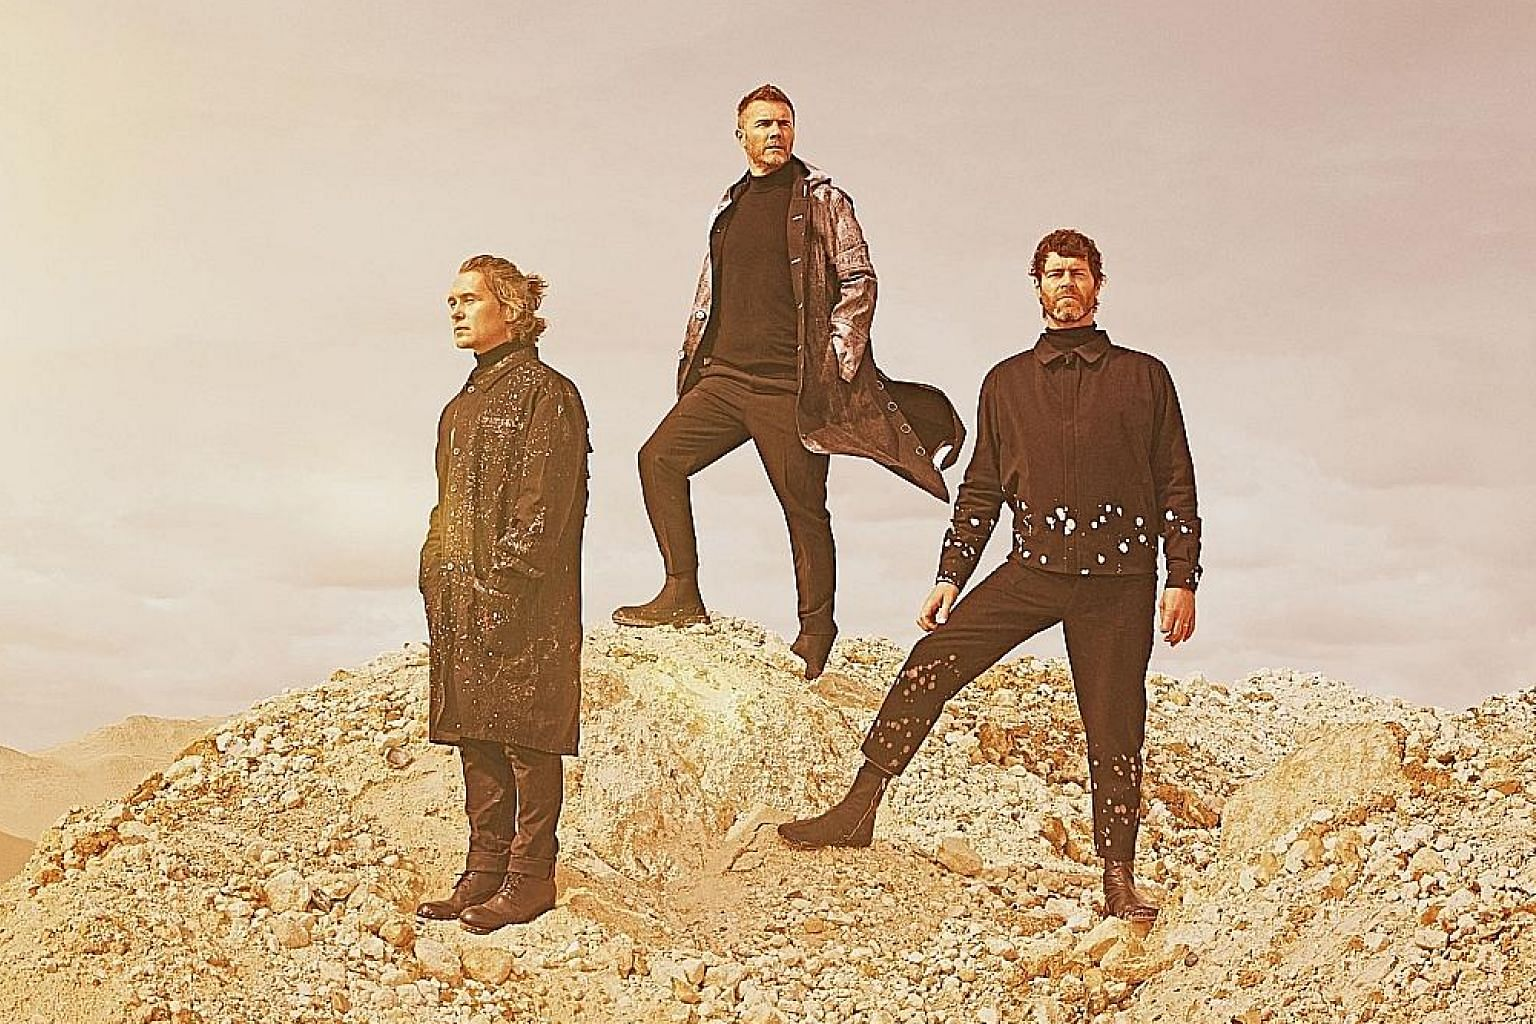 The remaining members of Take That are (from far left) Mark Owen, Gary Barlow and Howard Donald.